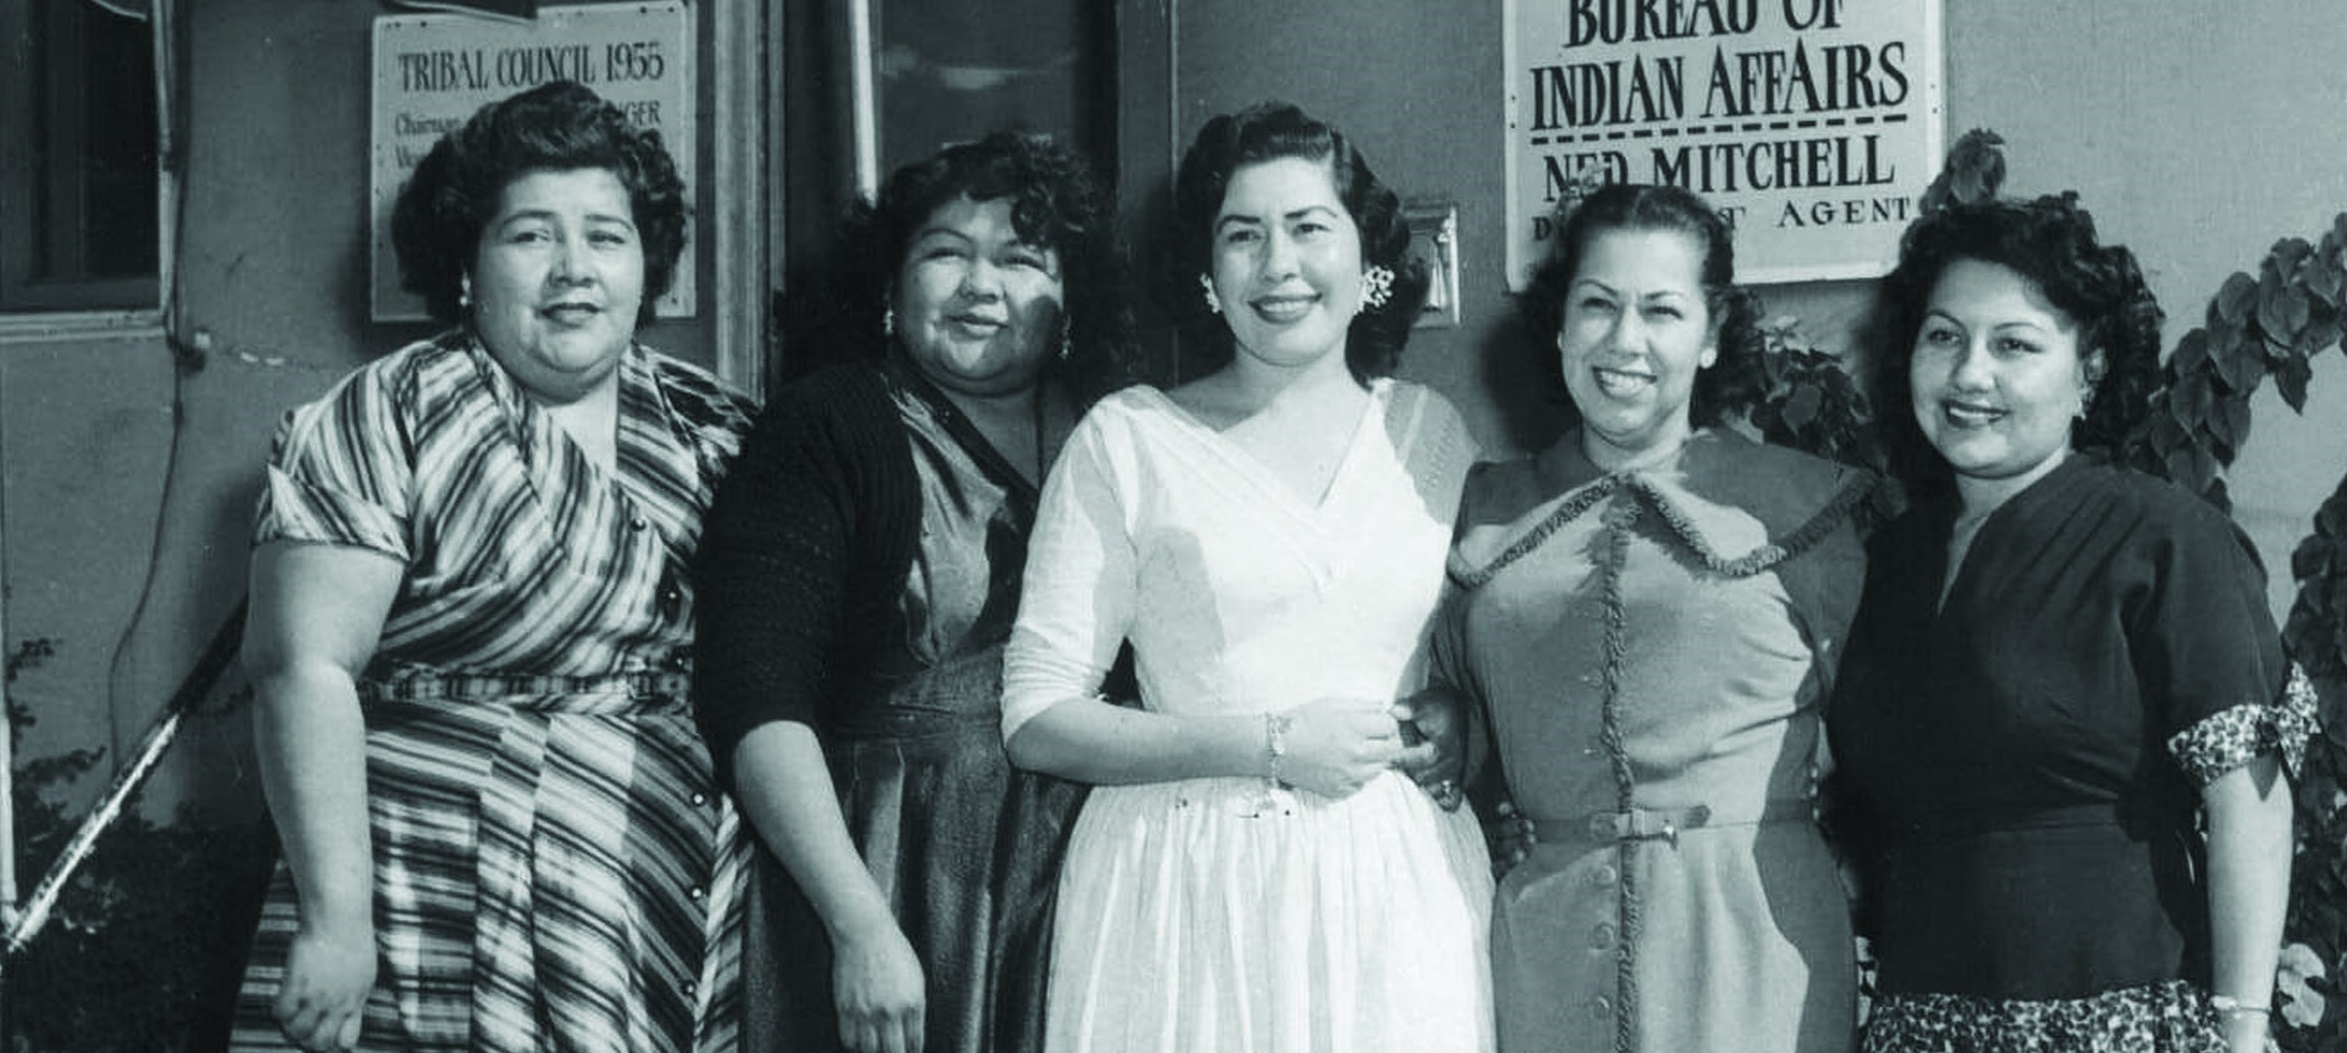 All Woman Agua Caliente Tribal Council Won The Right To Lease Their Own Private Property, Paving the Way for Indian Gaming